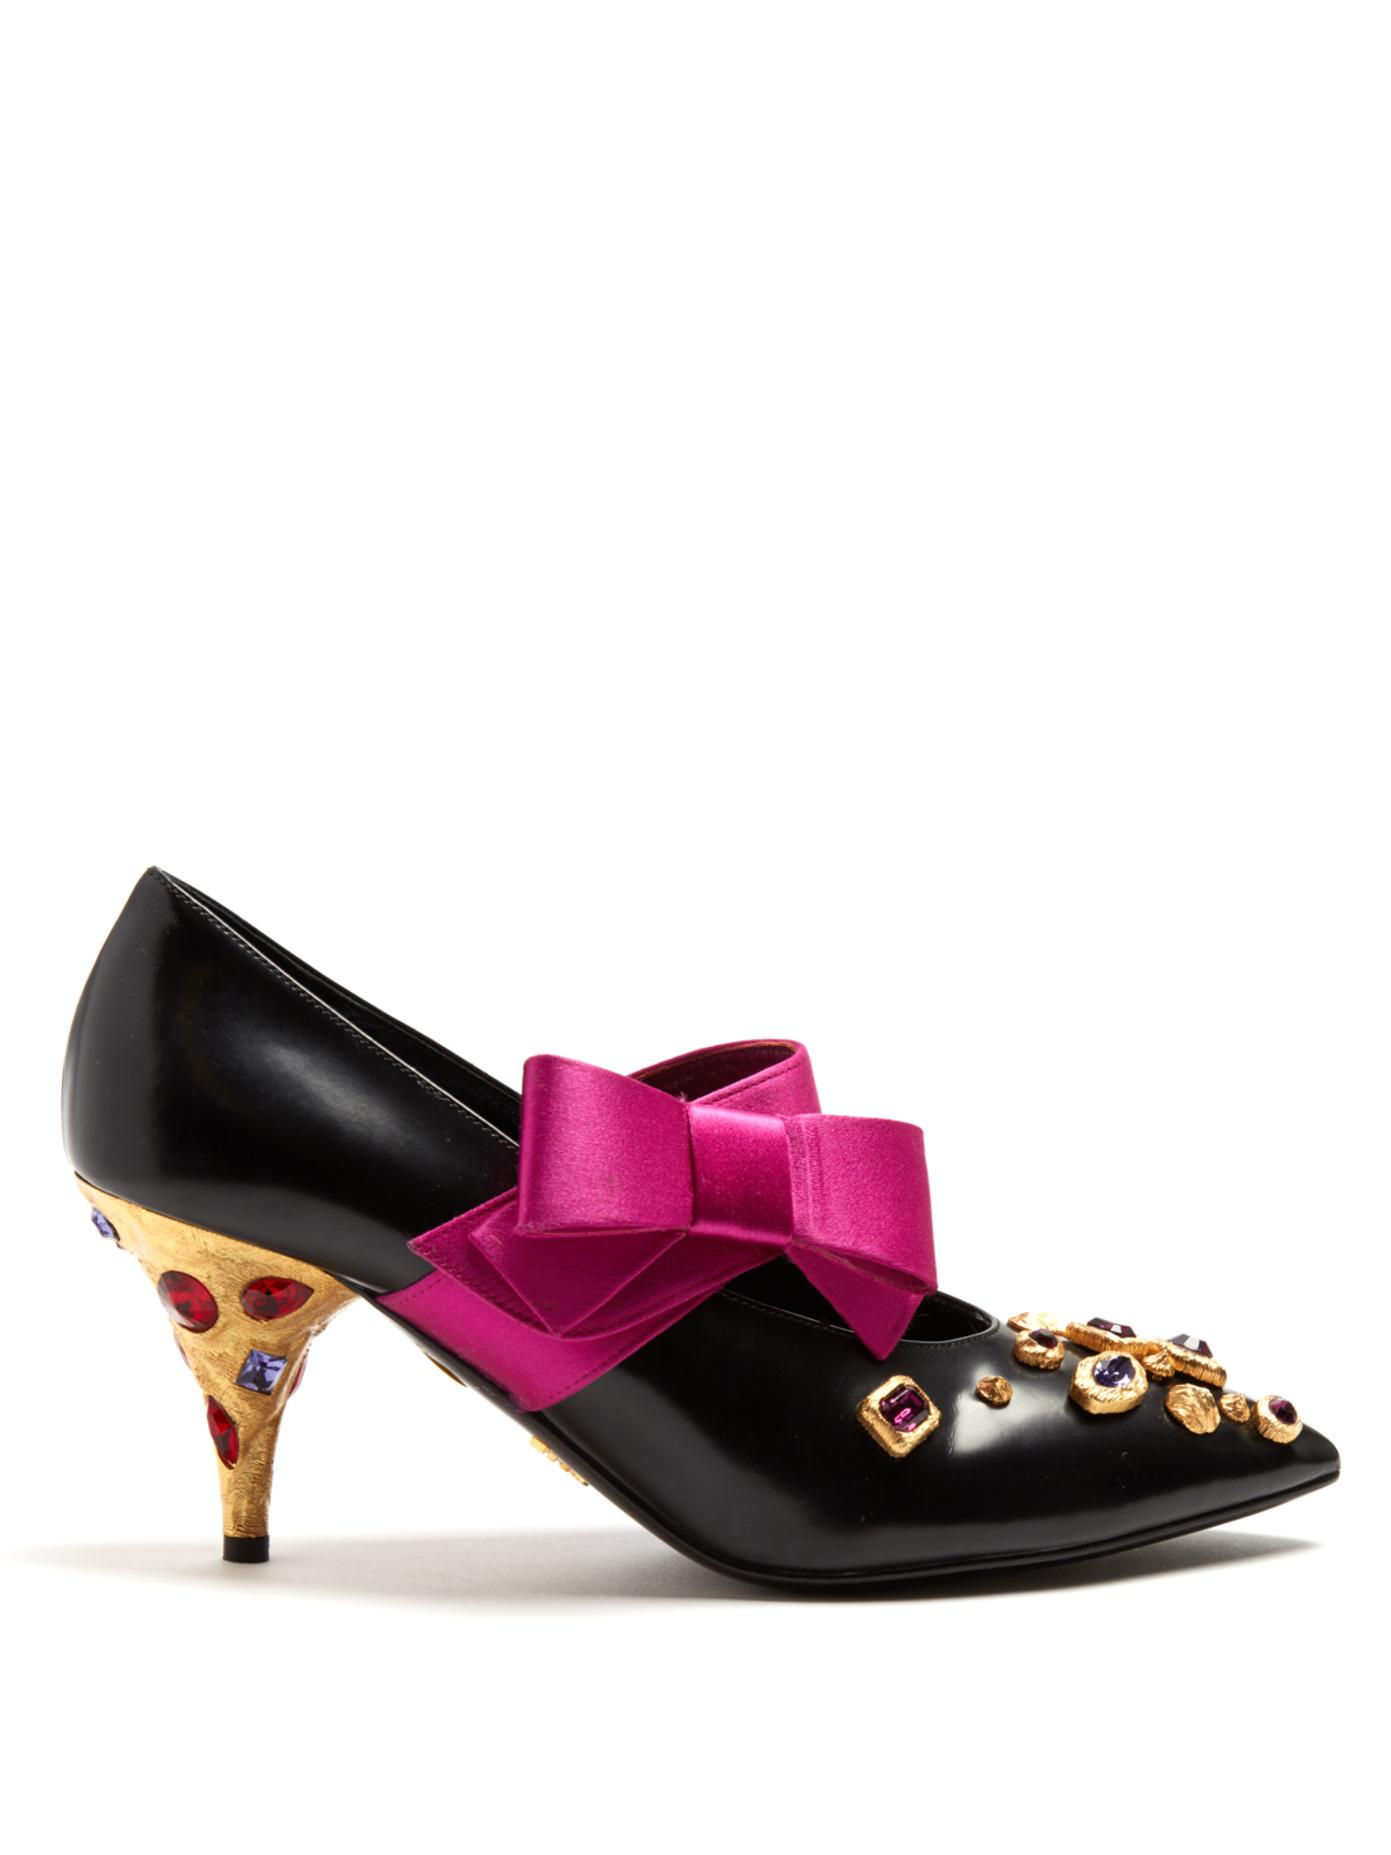 logo bow embellished pumps - Pink & Purple Prada p3otoWgMoH